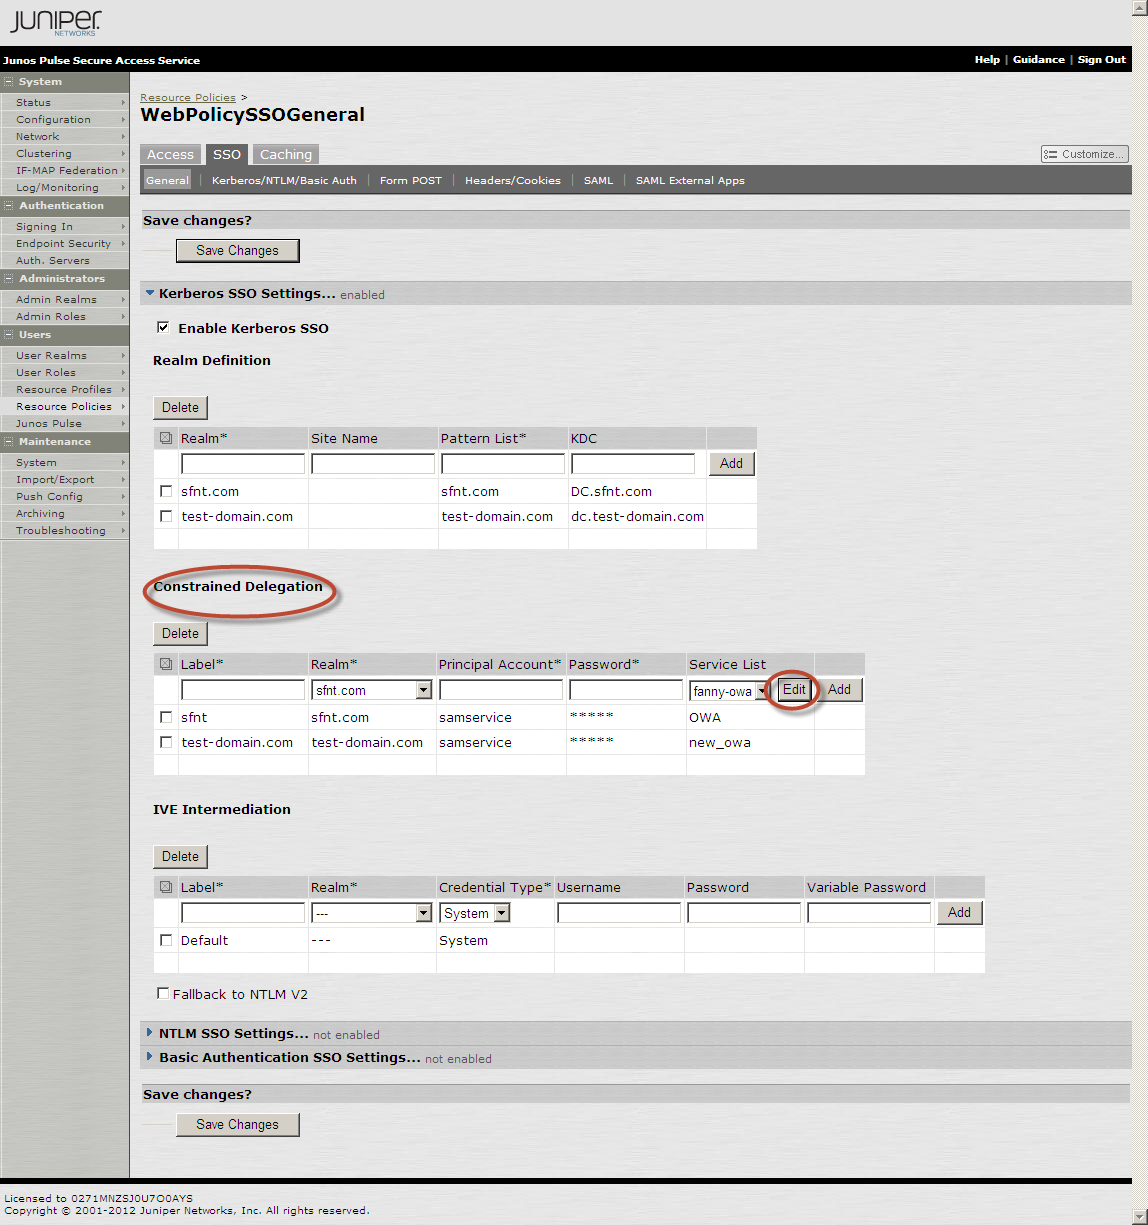 3. In the SA Administrator console, select Users > Resource